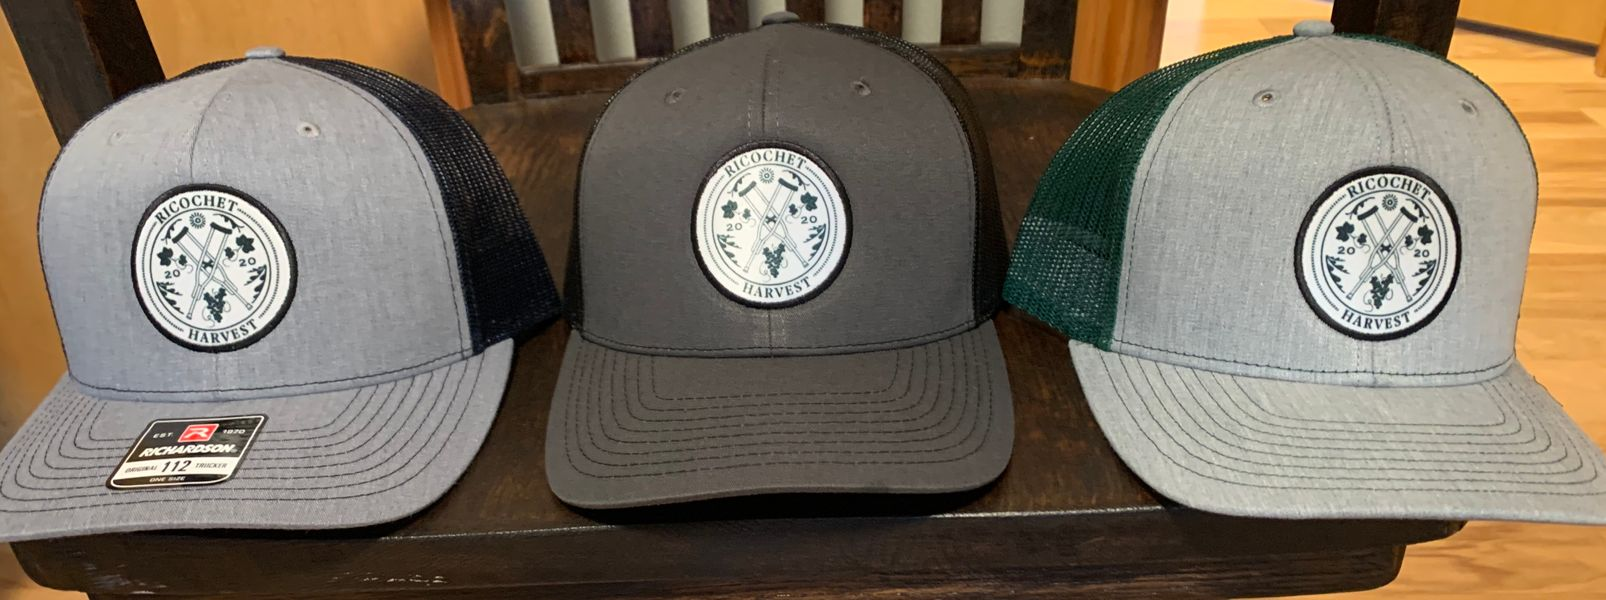 2020 Harvest Trucker Hat